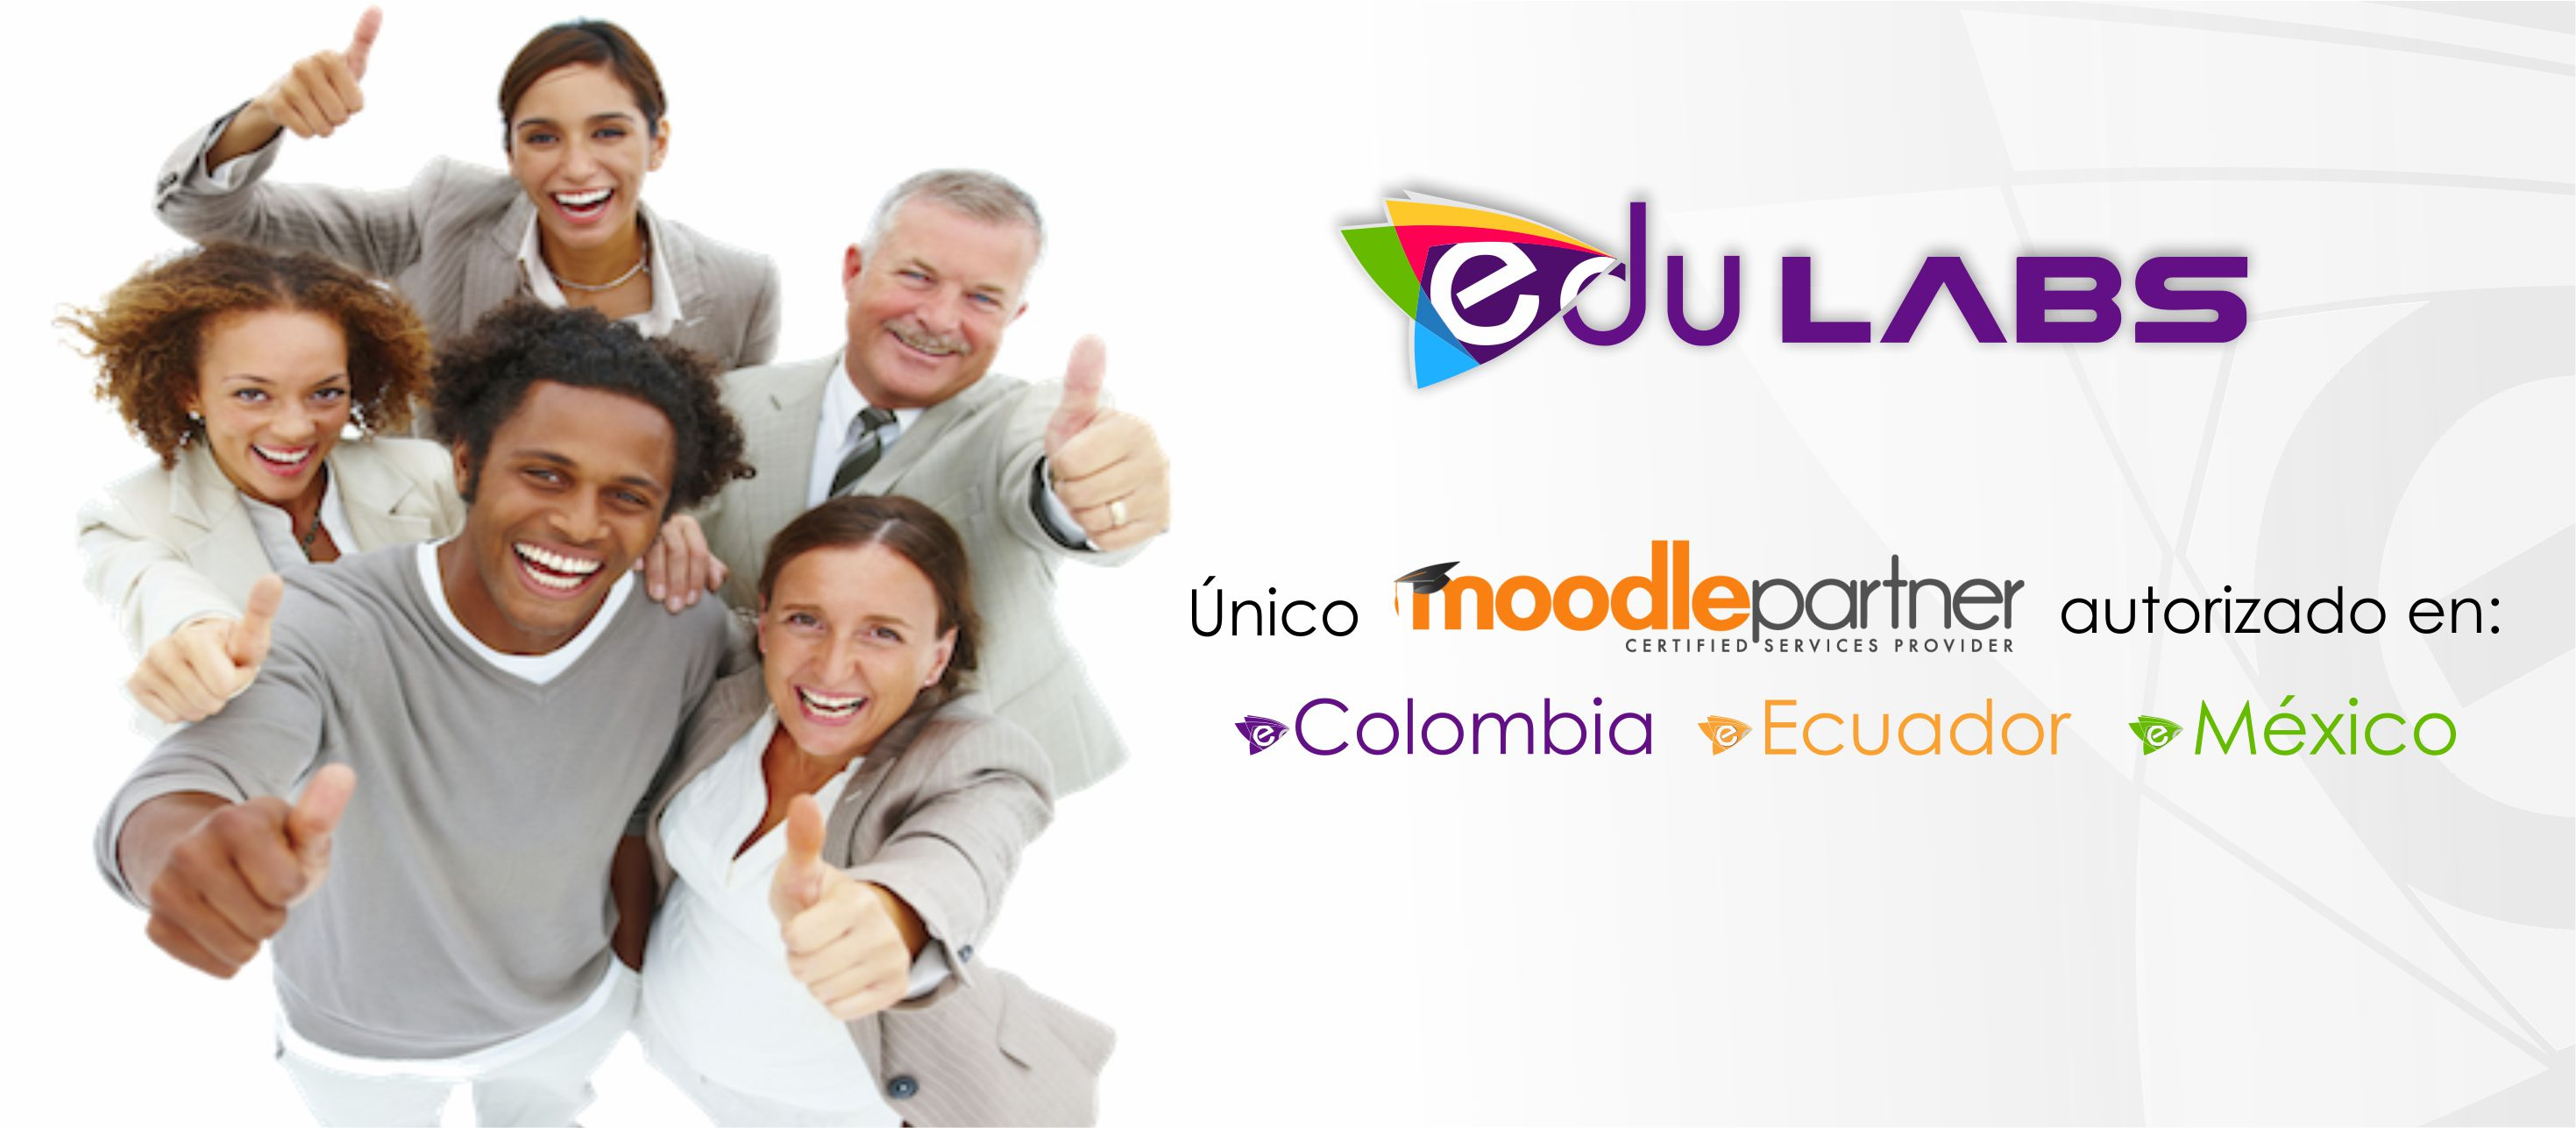 blackboard-not-moodle-partner